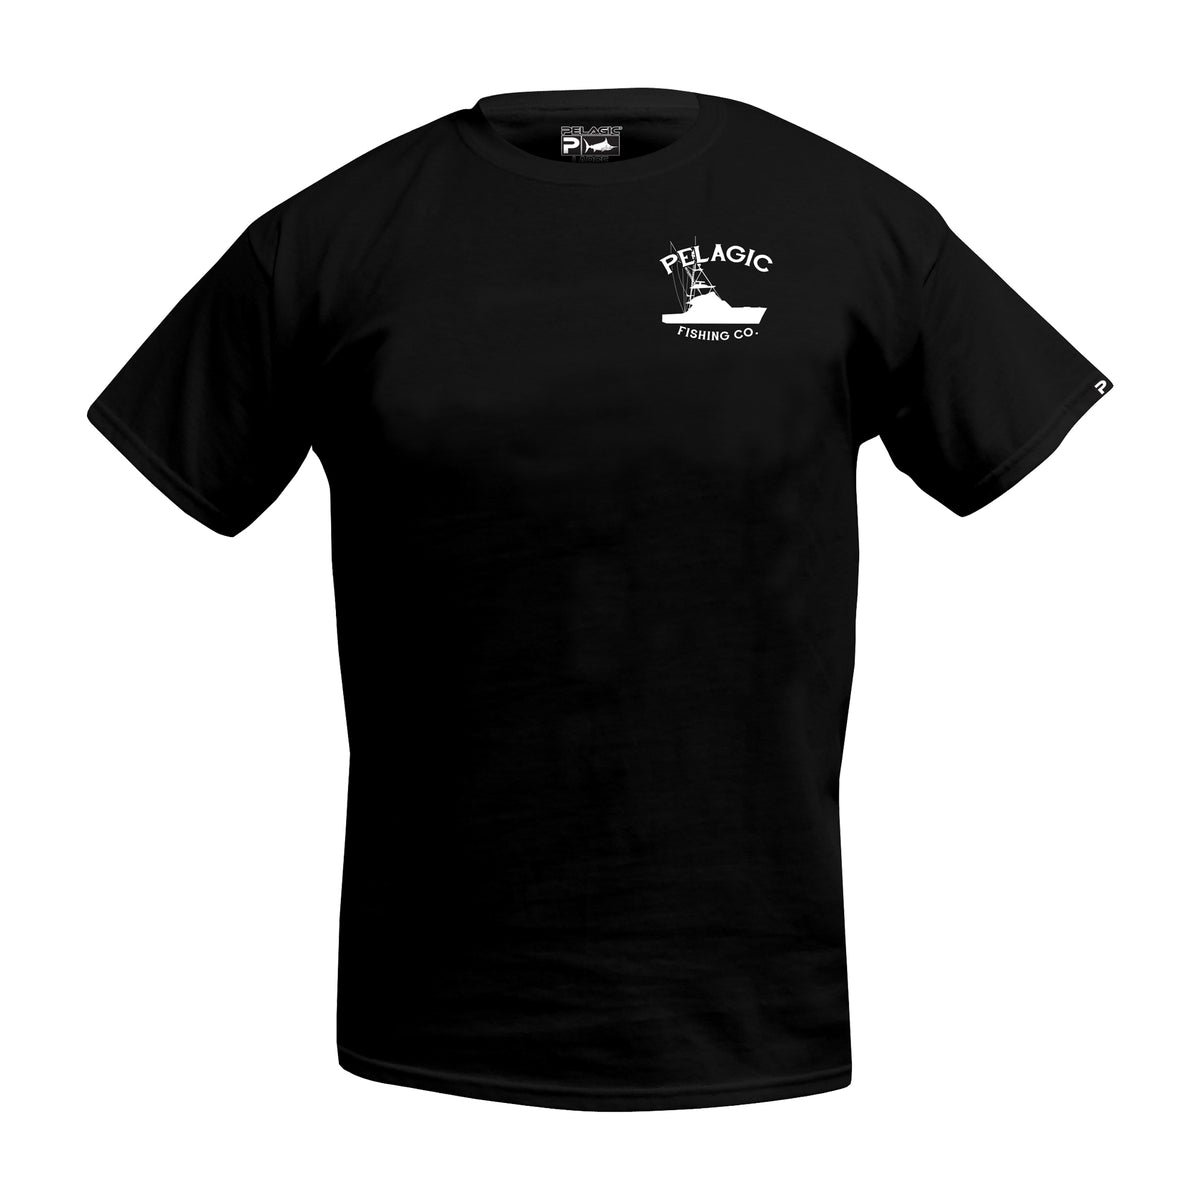 Charter Fishing T-shirt Big Image - 2